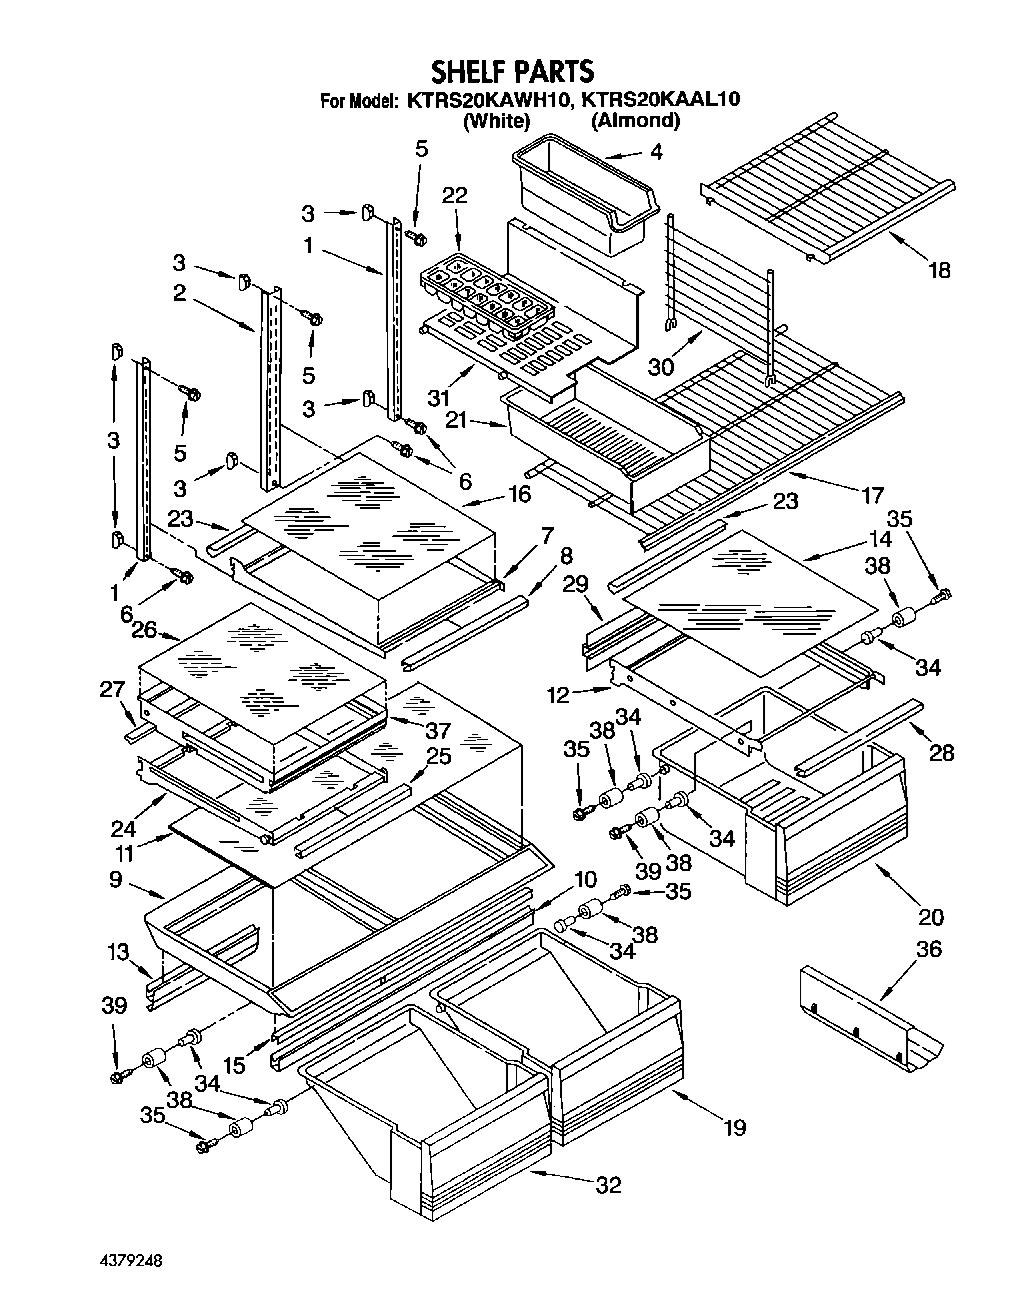 Industrial Trash Compactor Wiring Diagram Real Whirlpool Kenmore Kitchenaid Replacement Parts